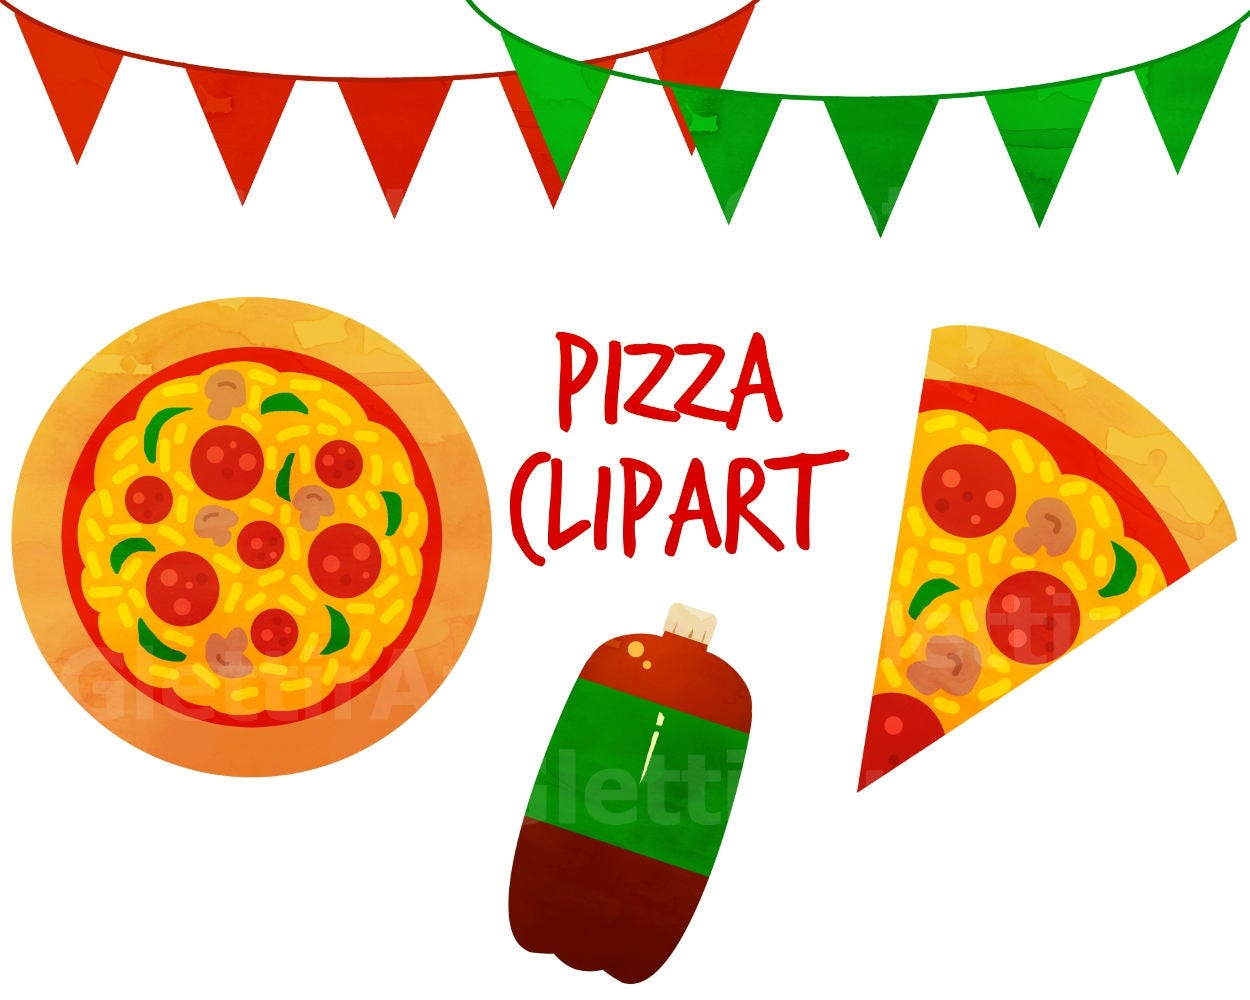 Pizza Clipart, food clipart, pizza party clipart, for ...